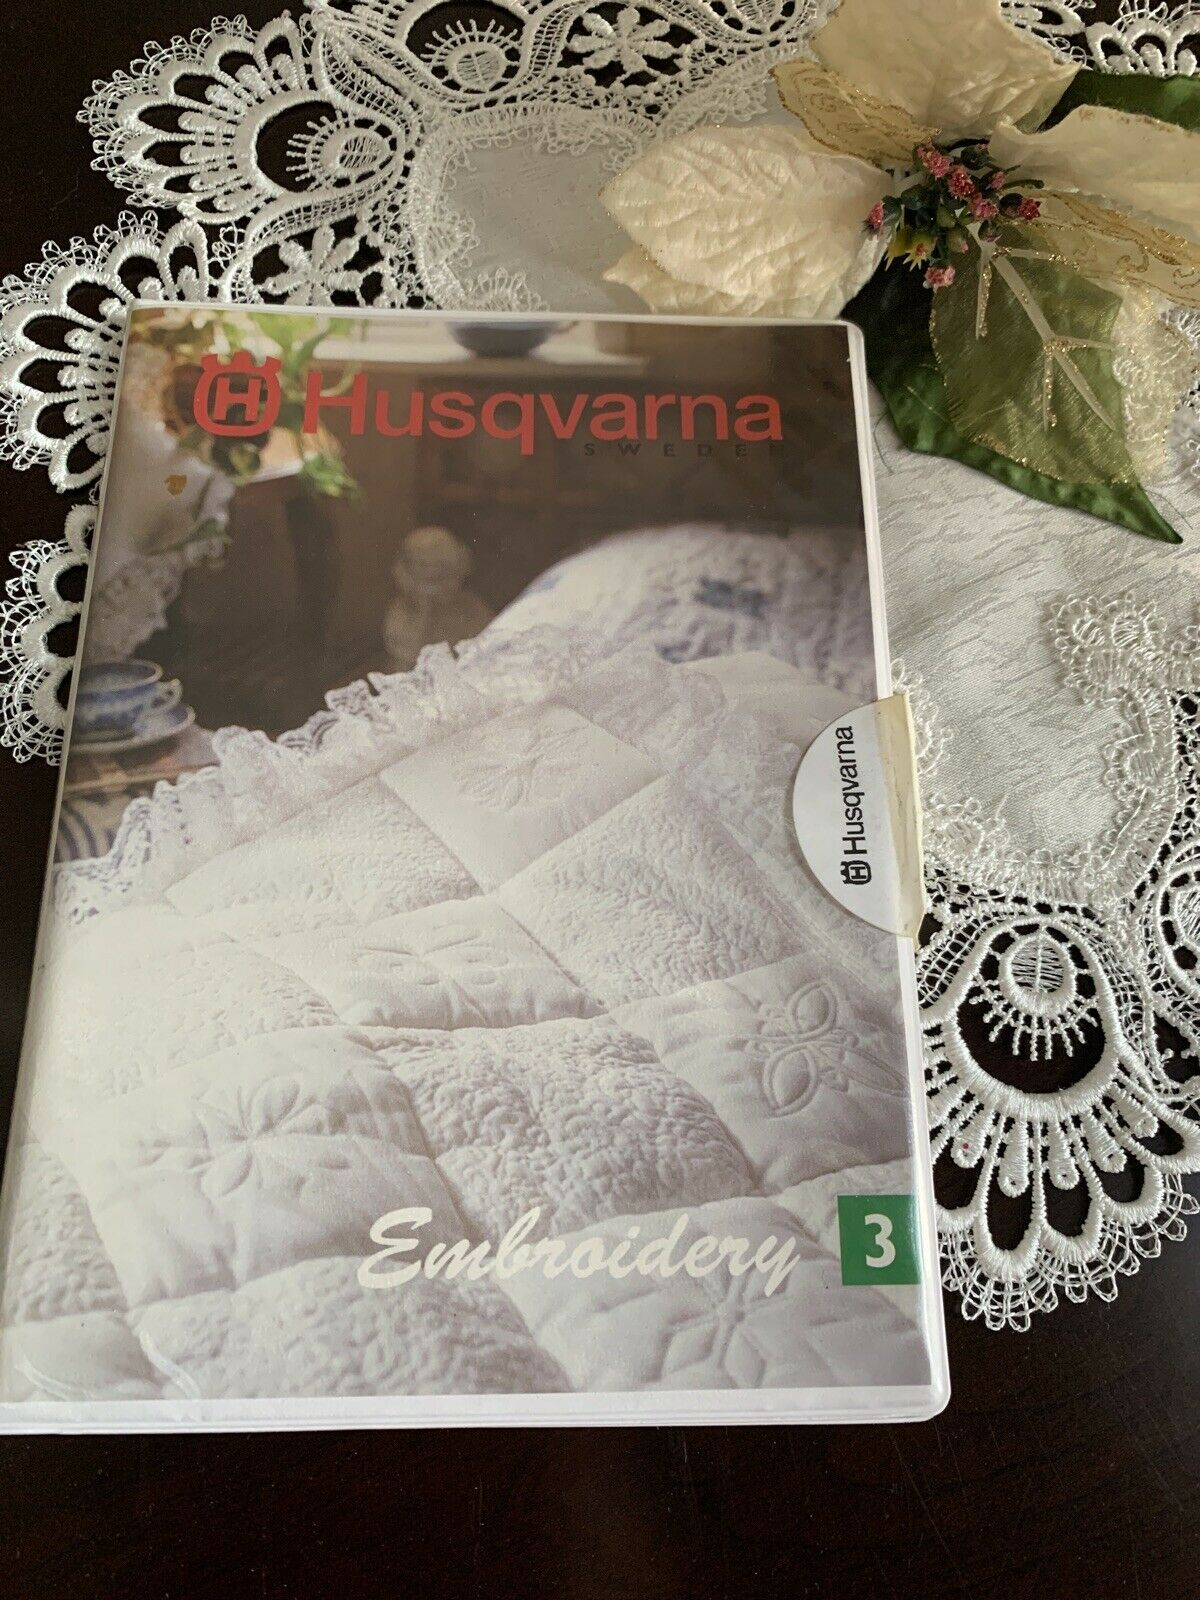 Husqvarna Viking Embroidery Card 3 Quilt Country For 1 Rose Iris For Sale Online Ebay